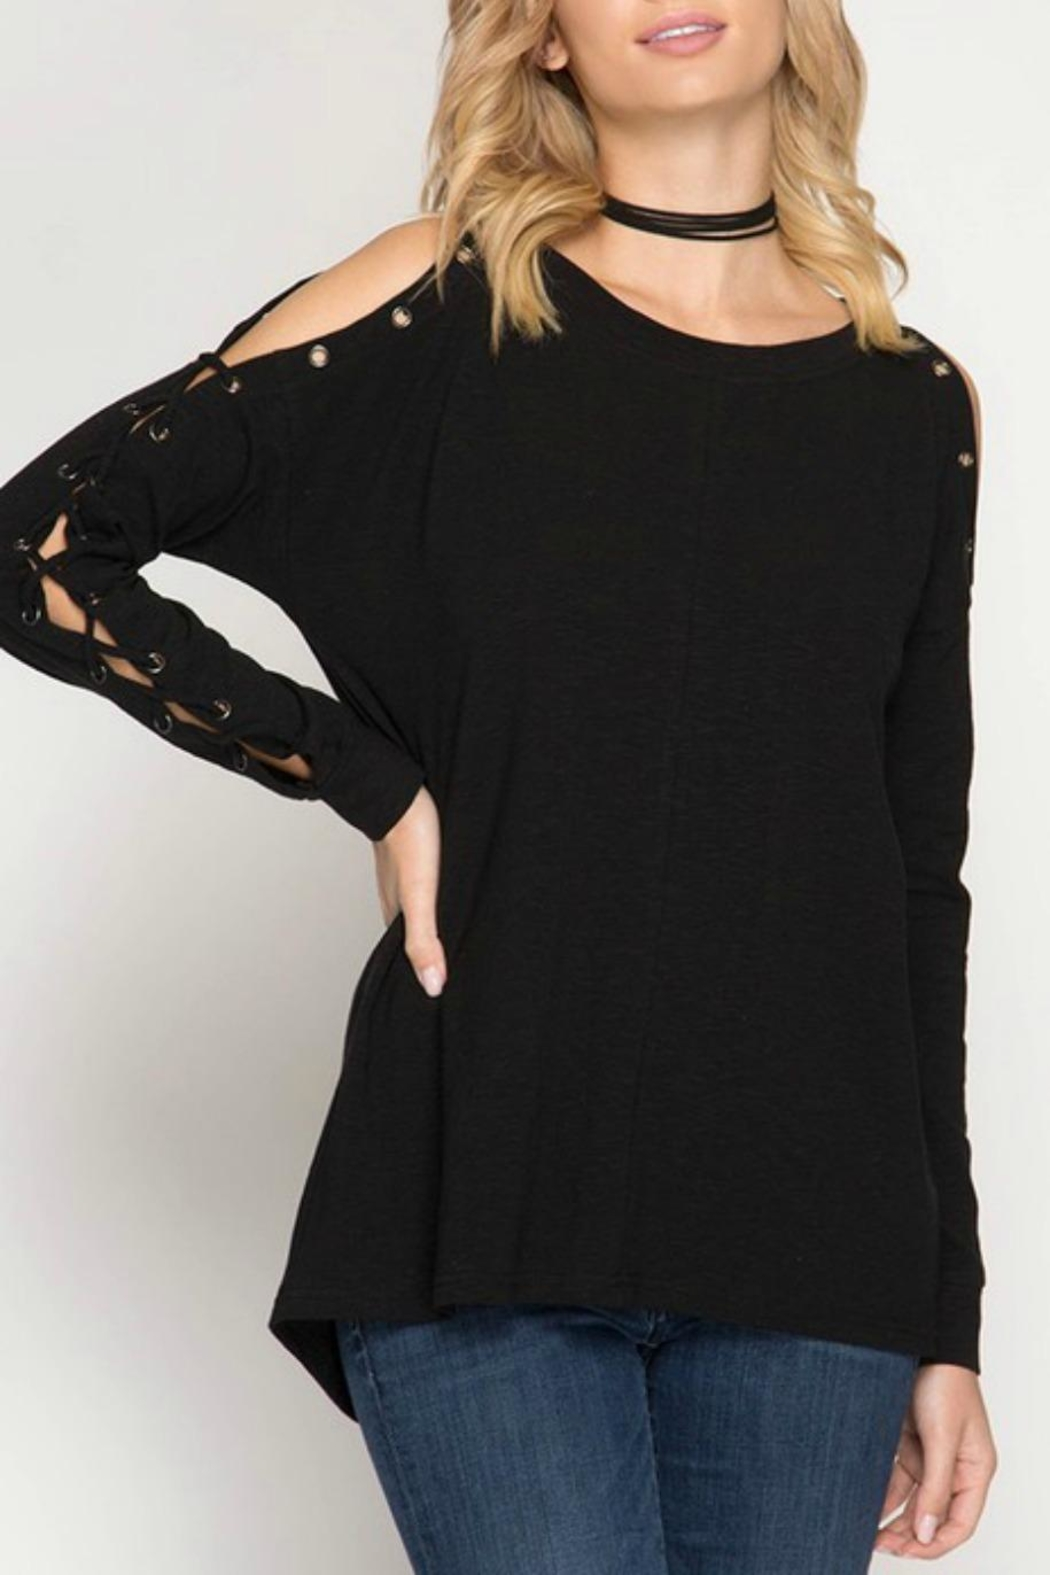 She + Sky Eyelet Lace-Up Pullover - Main Image